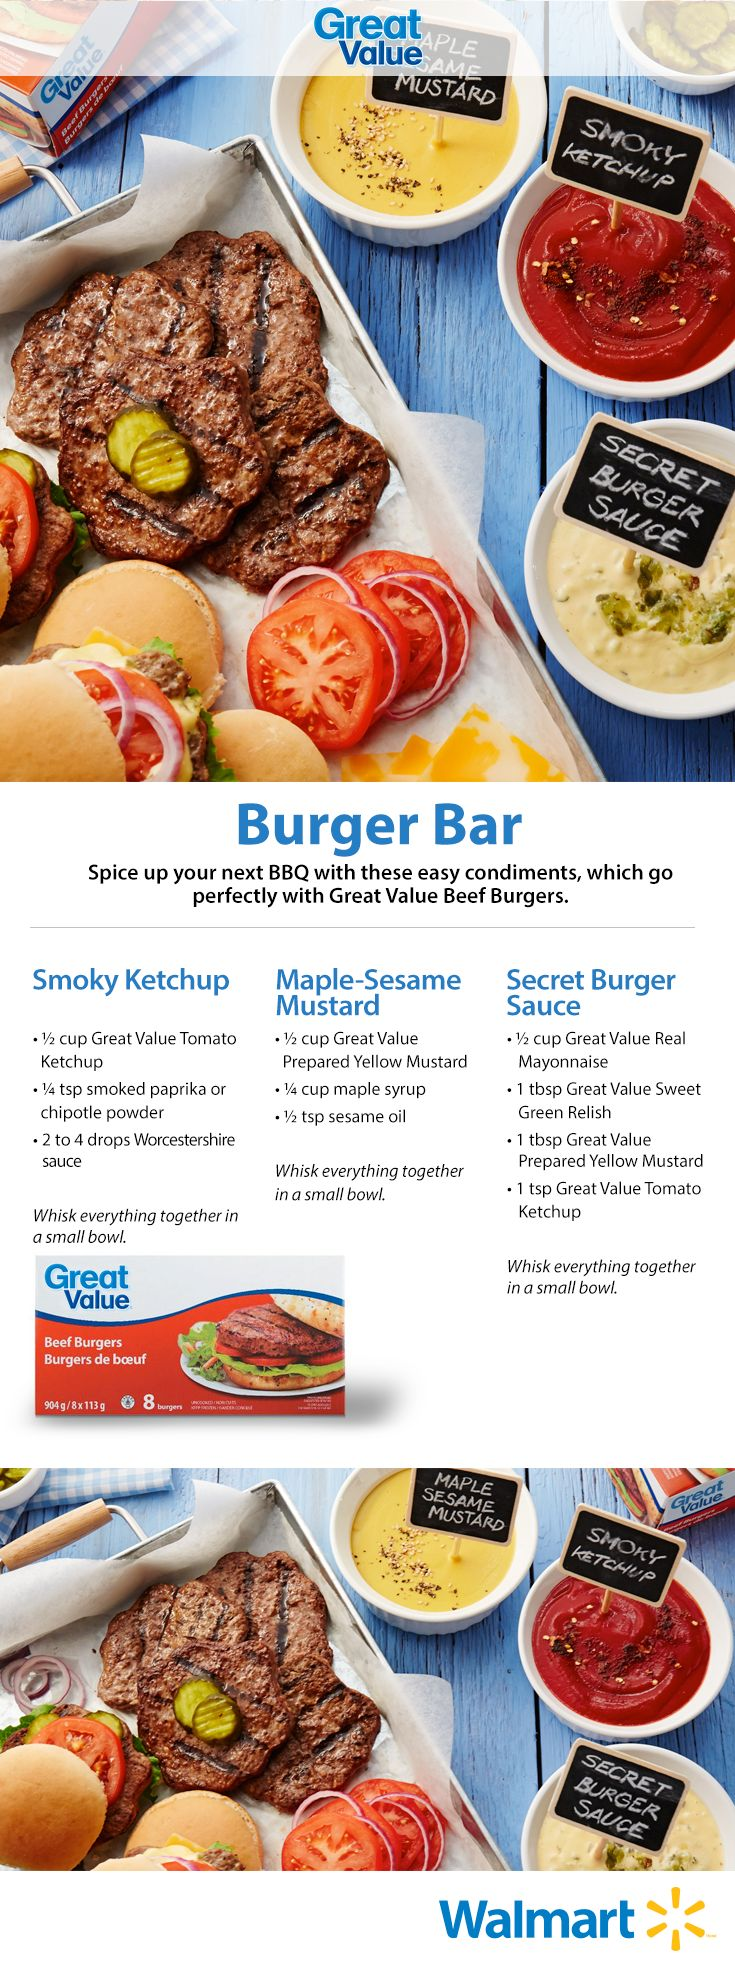 Spice up your burger with sweet and savoury sauces made with Great Value's yummy burgers! #makesummergreat